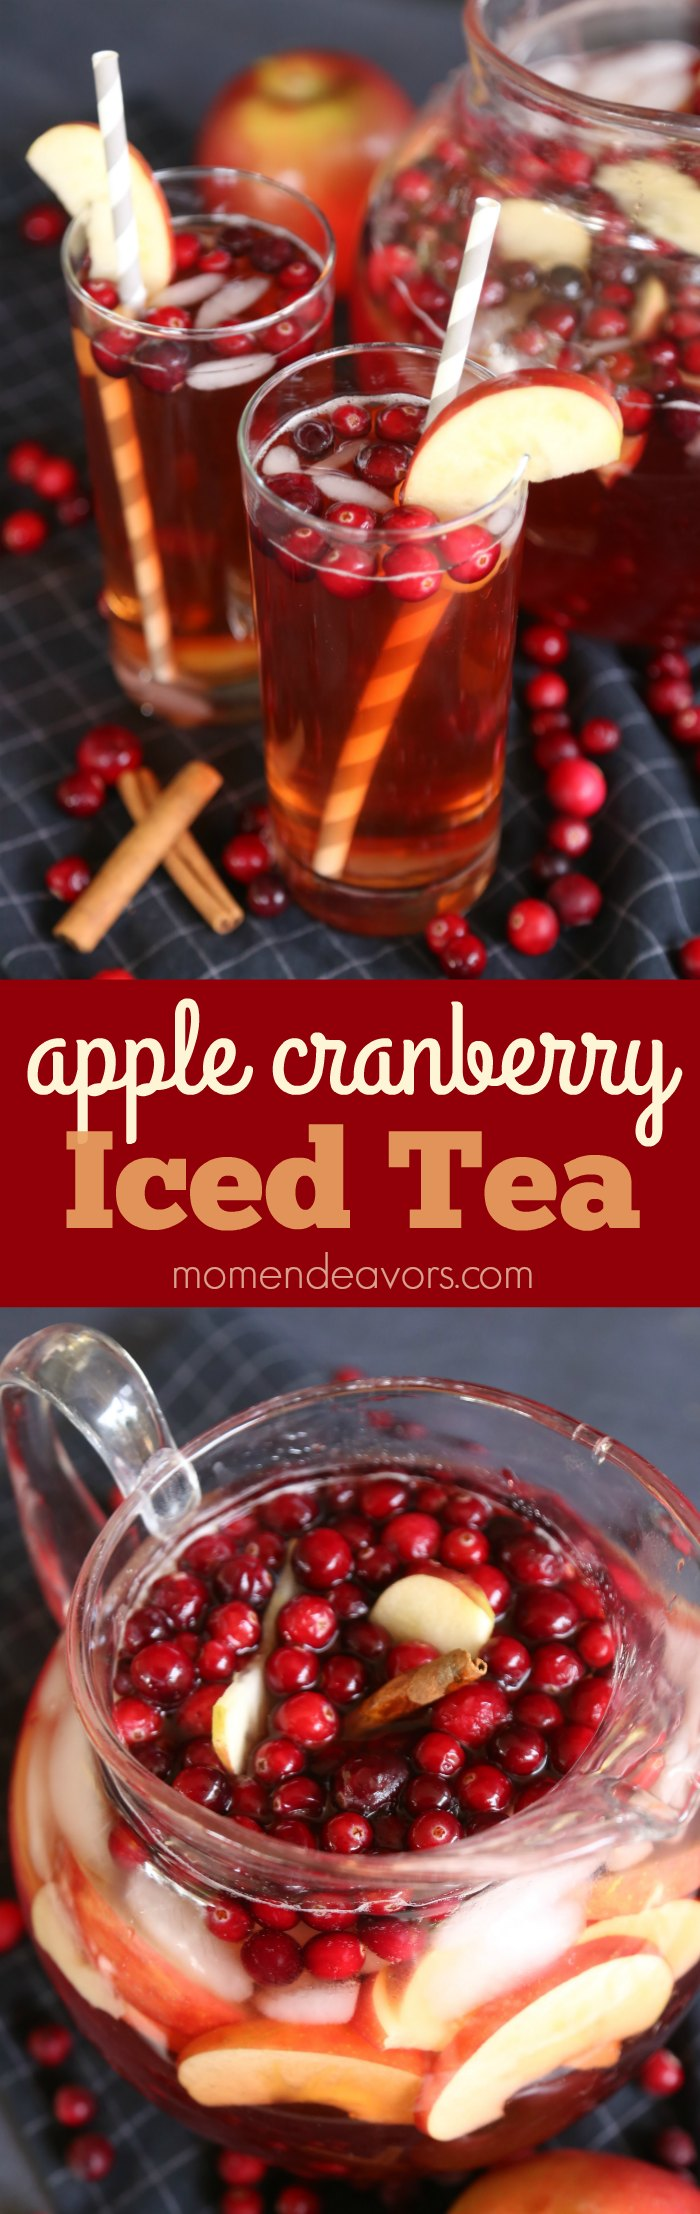 sparkling-apple-cranberry-iced-tea-recipe